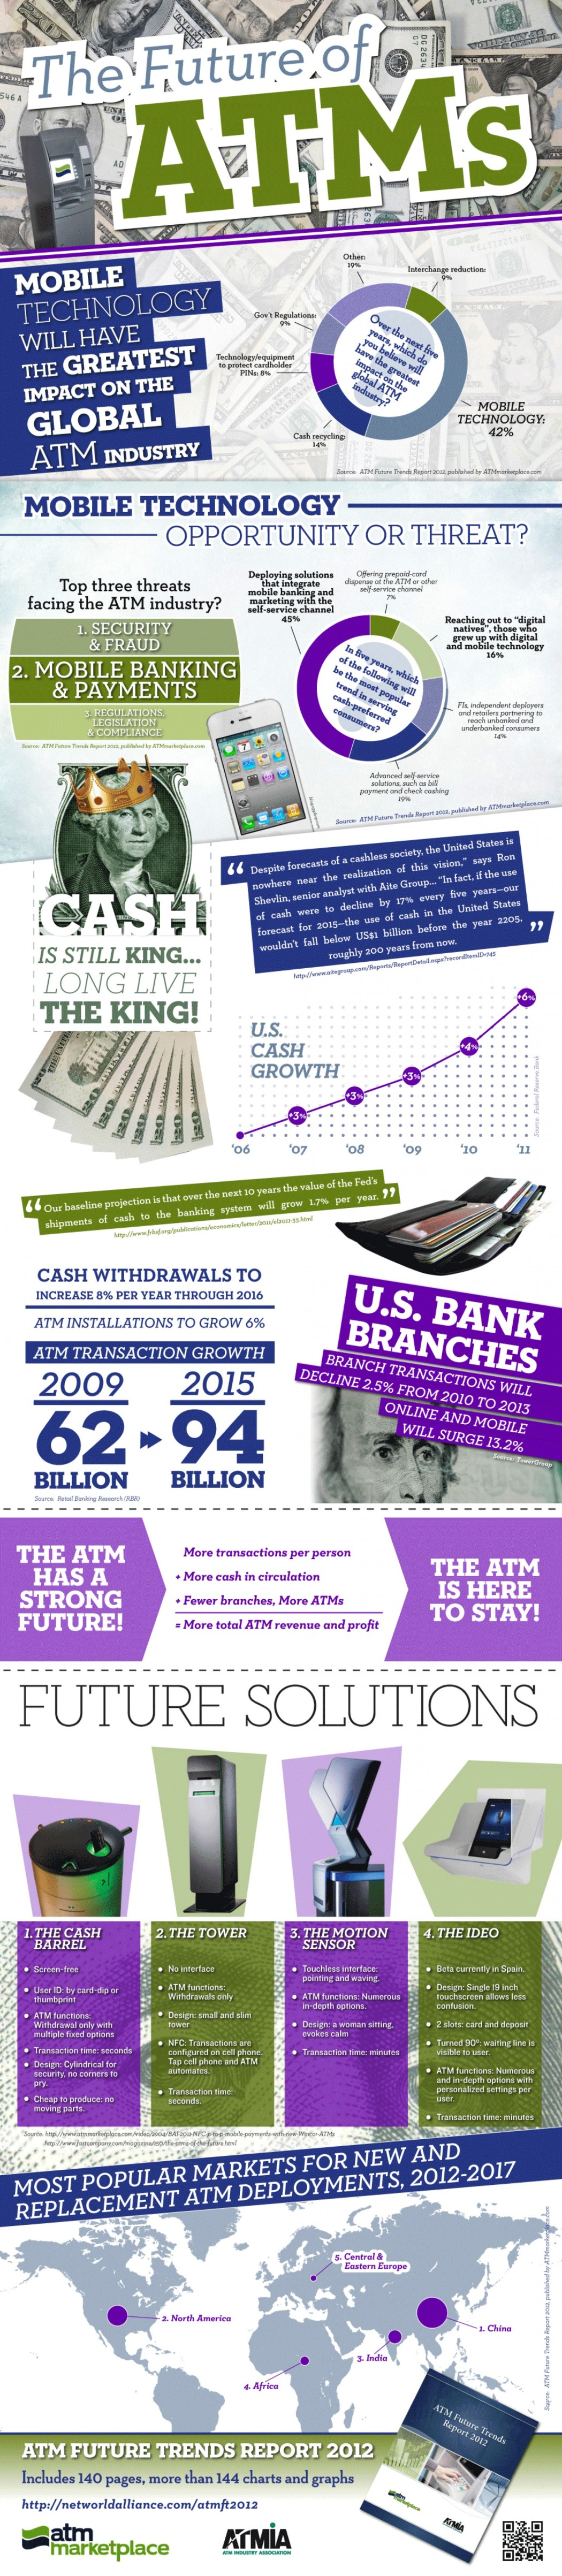 5. The Future of ATMs